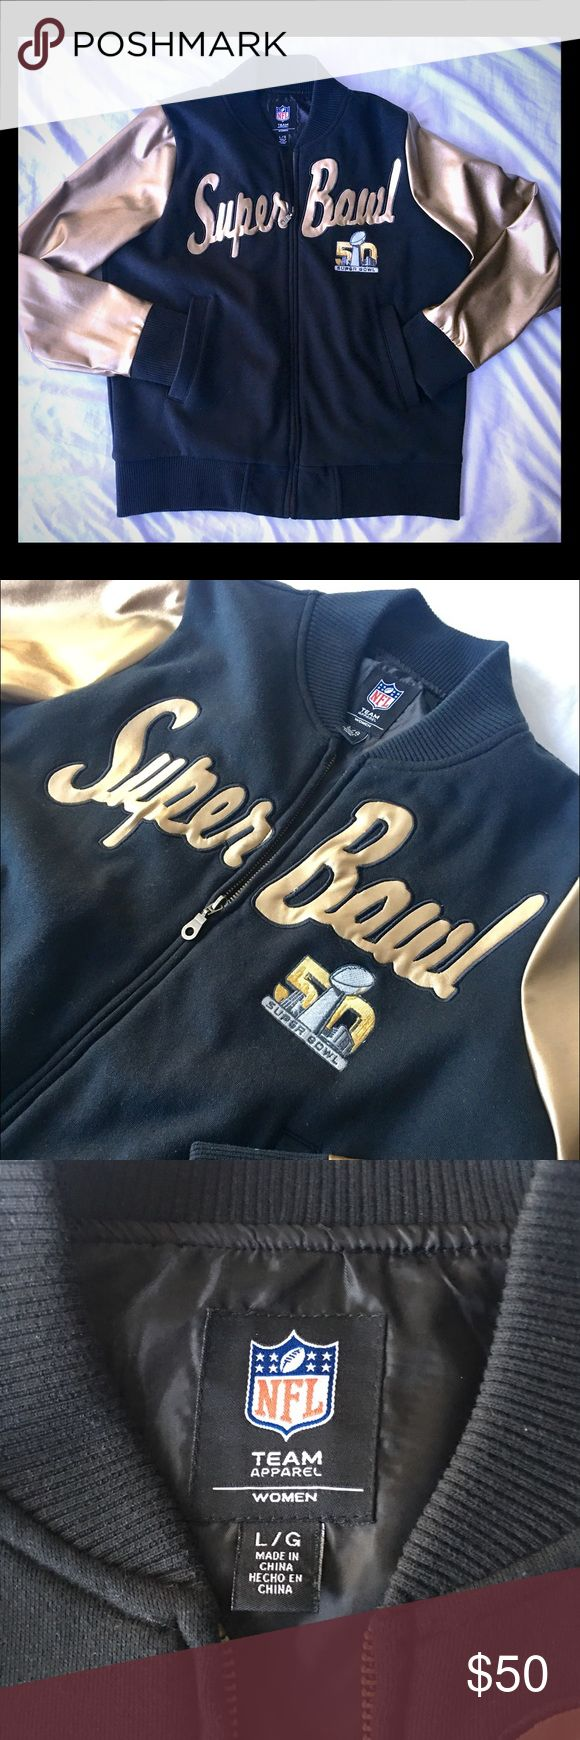 🏈 Official NFL Super Bowl 50 Golden Zip Jacket 🏈 Channel your inner Bruno Mars with this smooth NFL Super Bowl 50 full zip lined jacket with authentic embroidered patch and two pockets. NFL Team Apparel Jackets & Coats